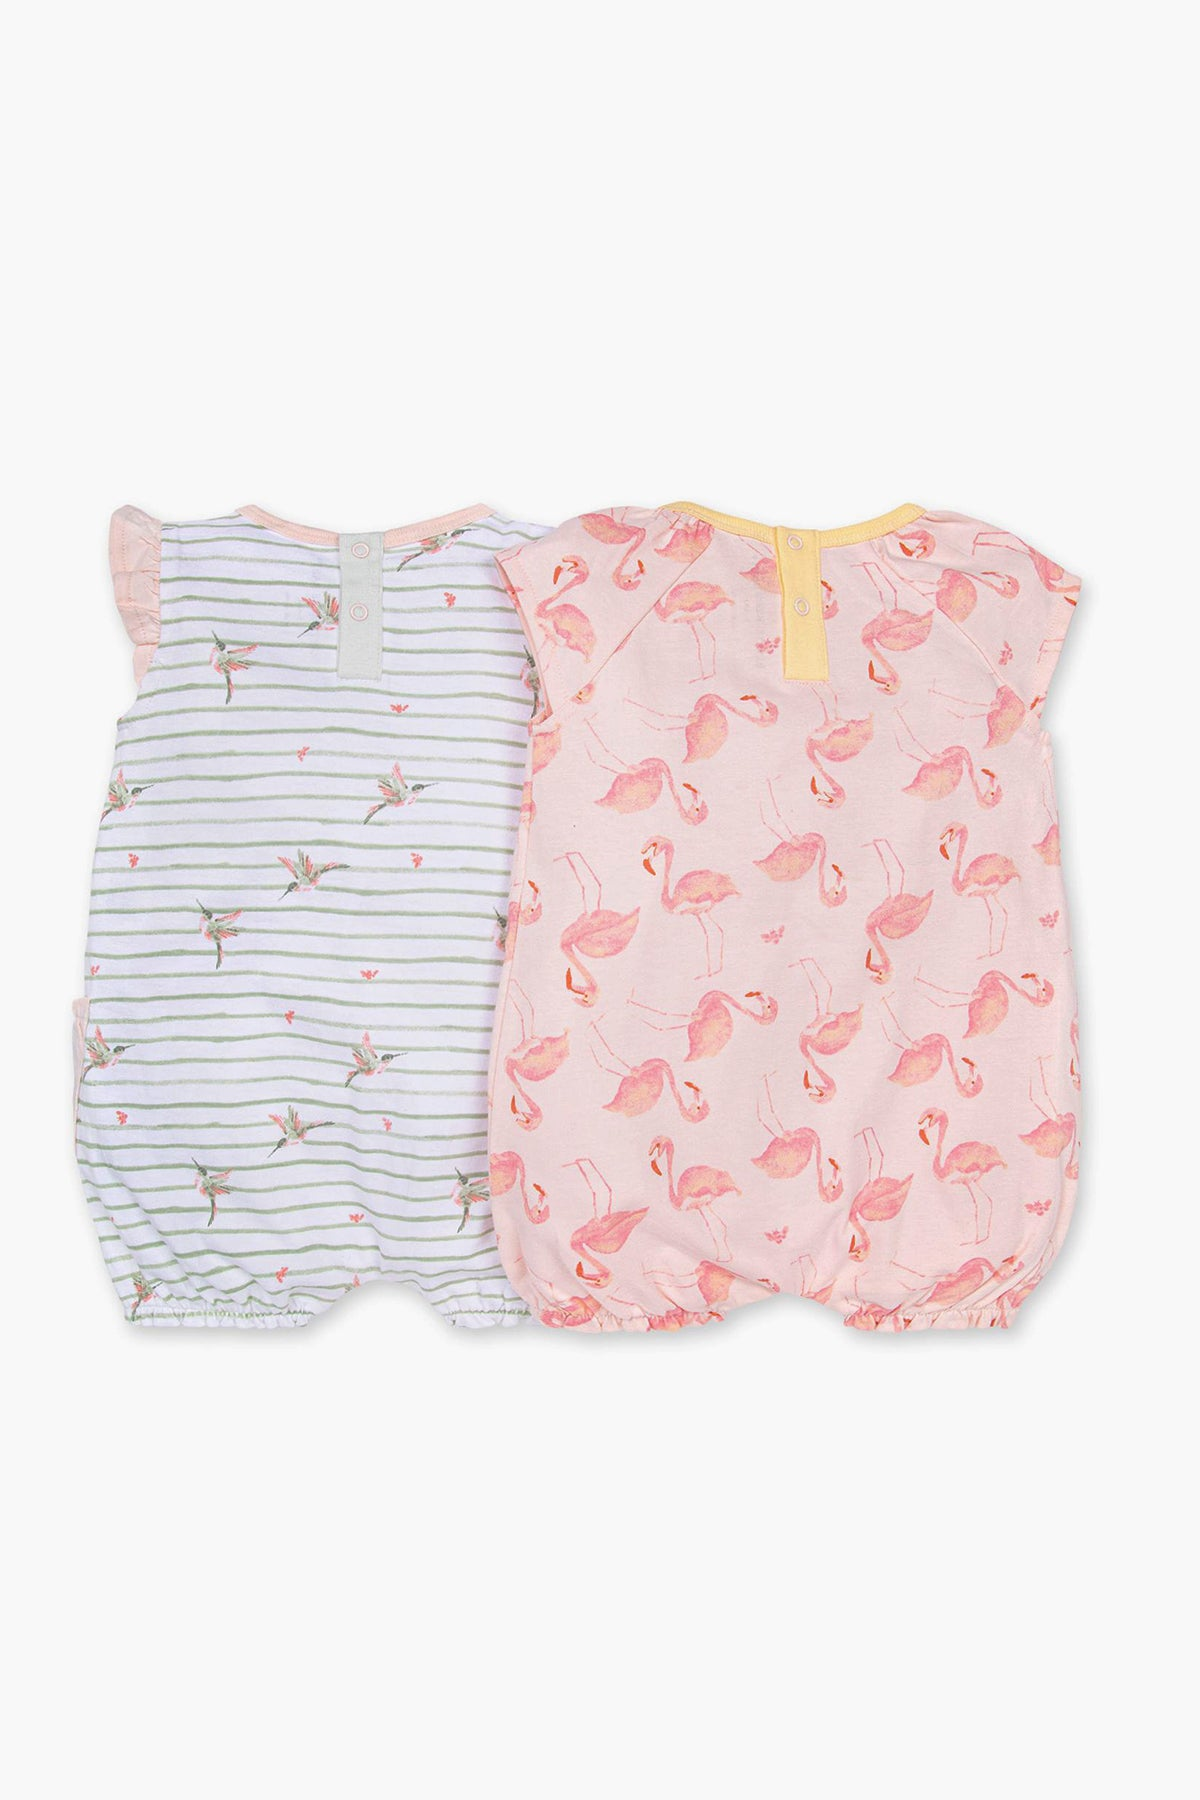 Burt's Bees Happy Hummingbird Bubble 2-Pack Baby Girls Set